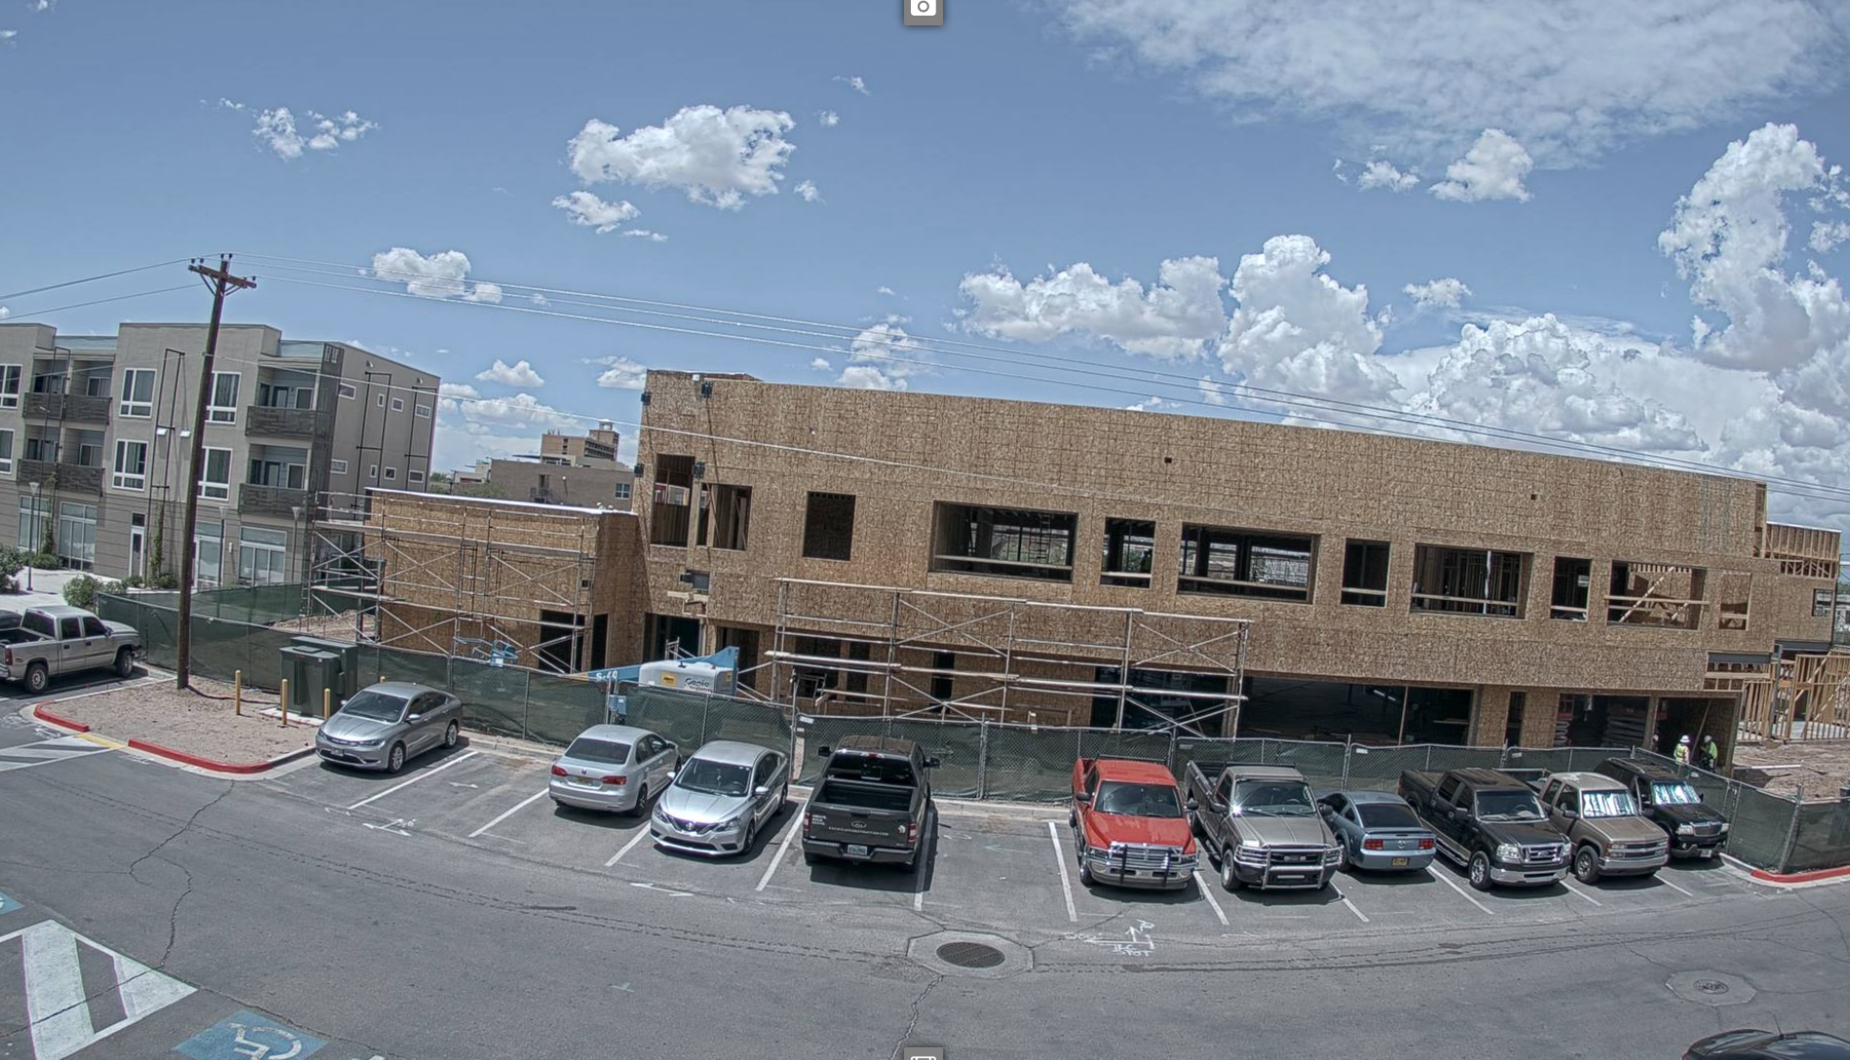 A photo of a building under a blue sky with some clouds. The building is under construction and the walls and framing are visible. Trucks and cars are parked in front of the building.